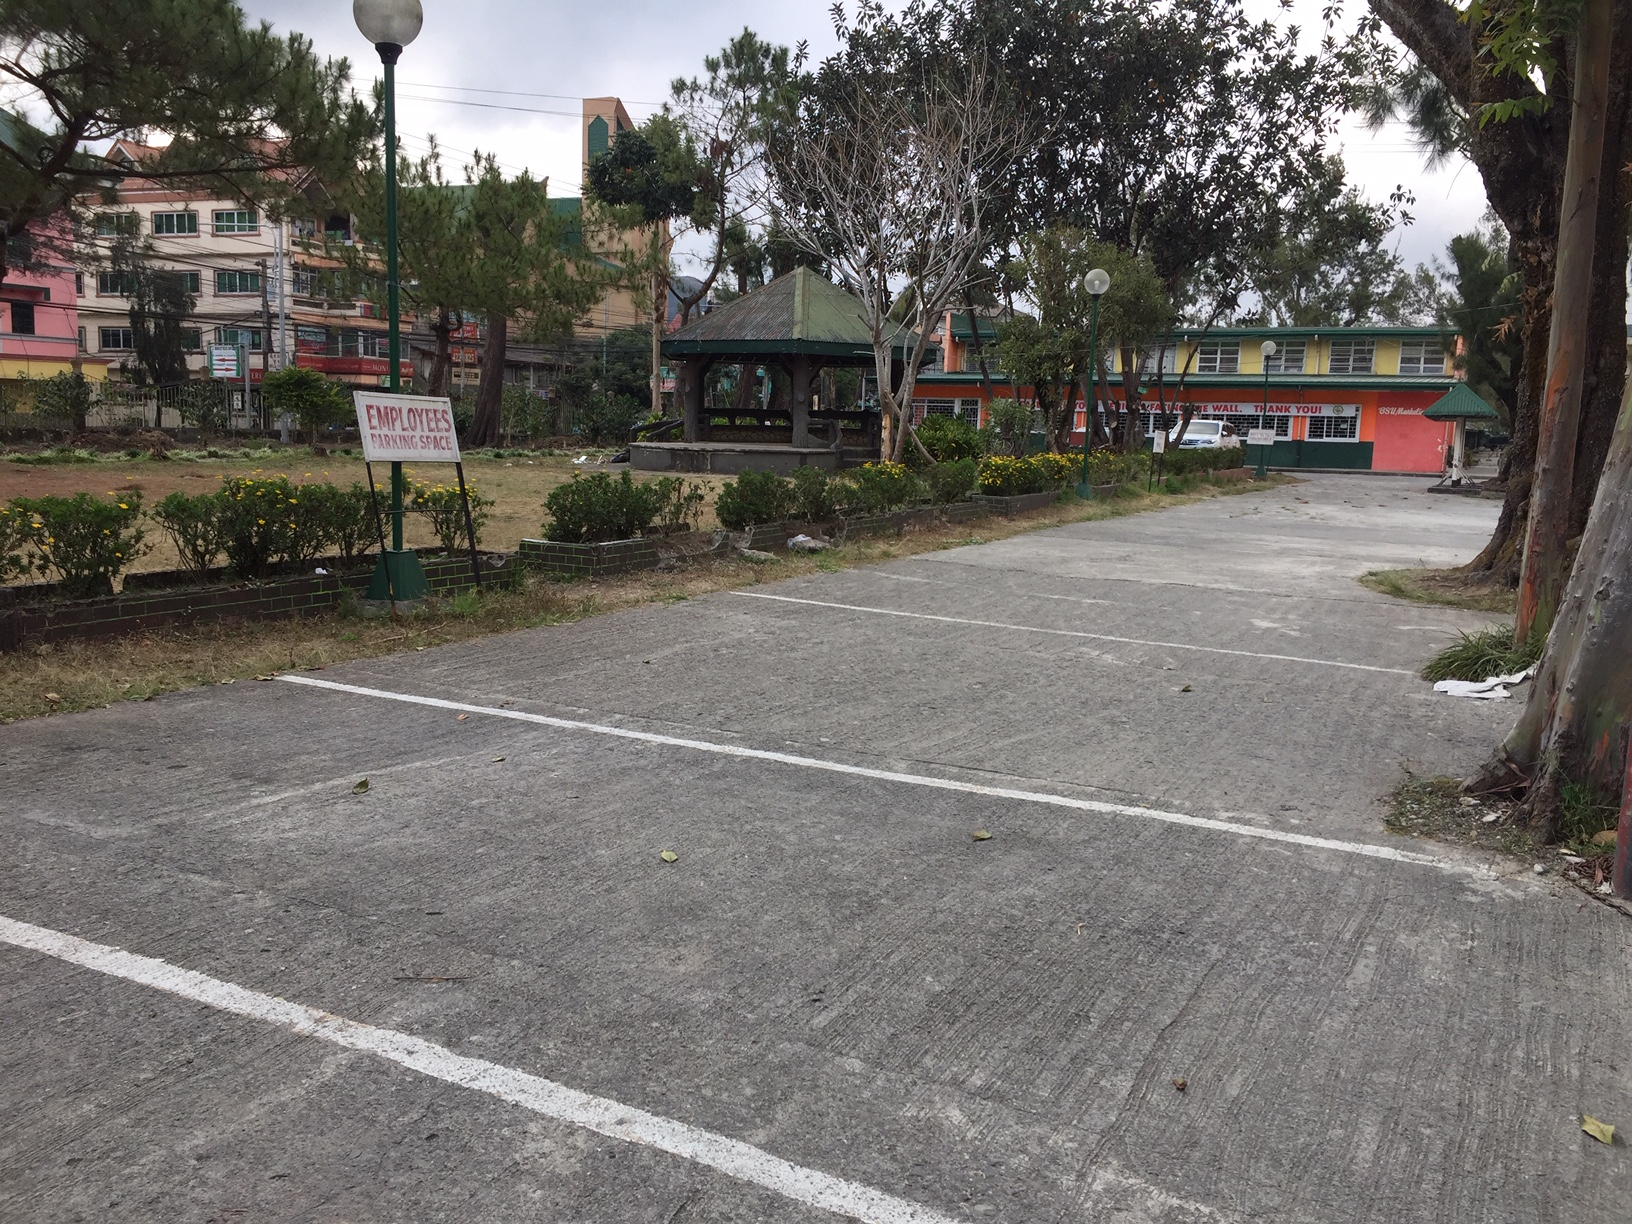 Fig. 1, Empty parking spaces during the carless day